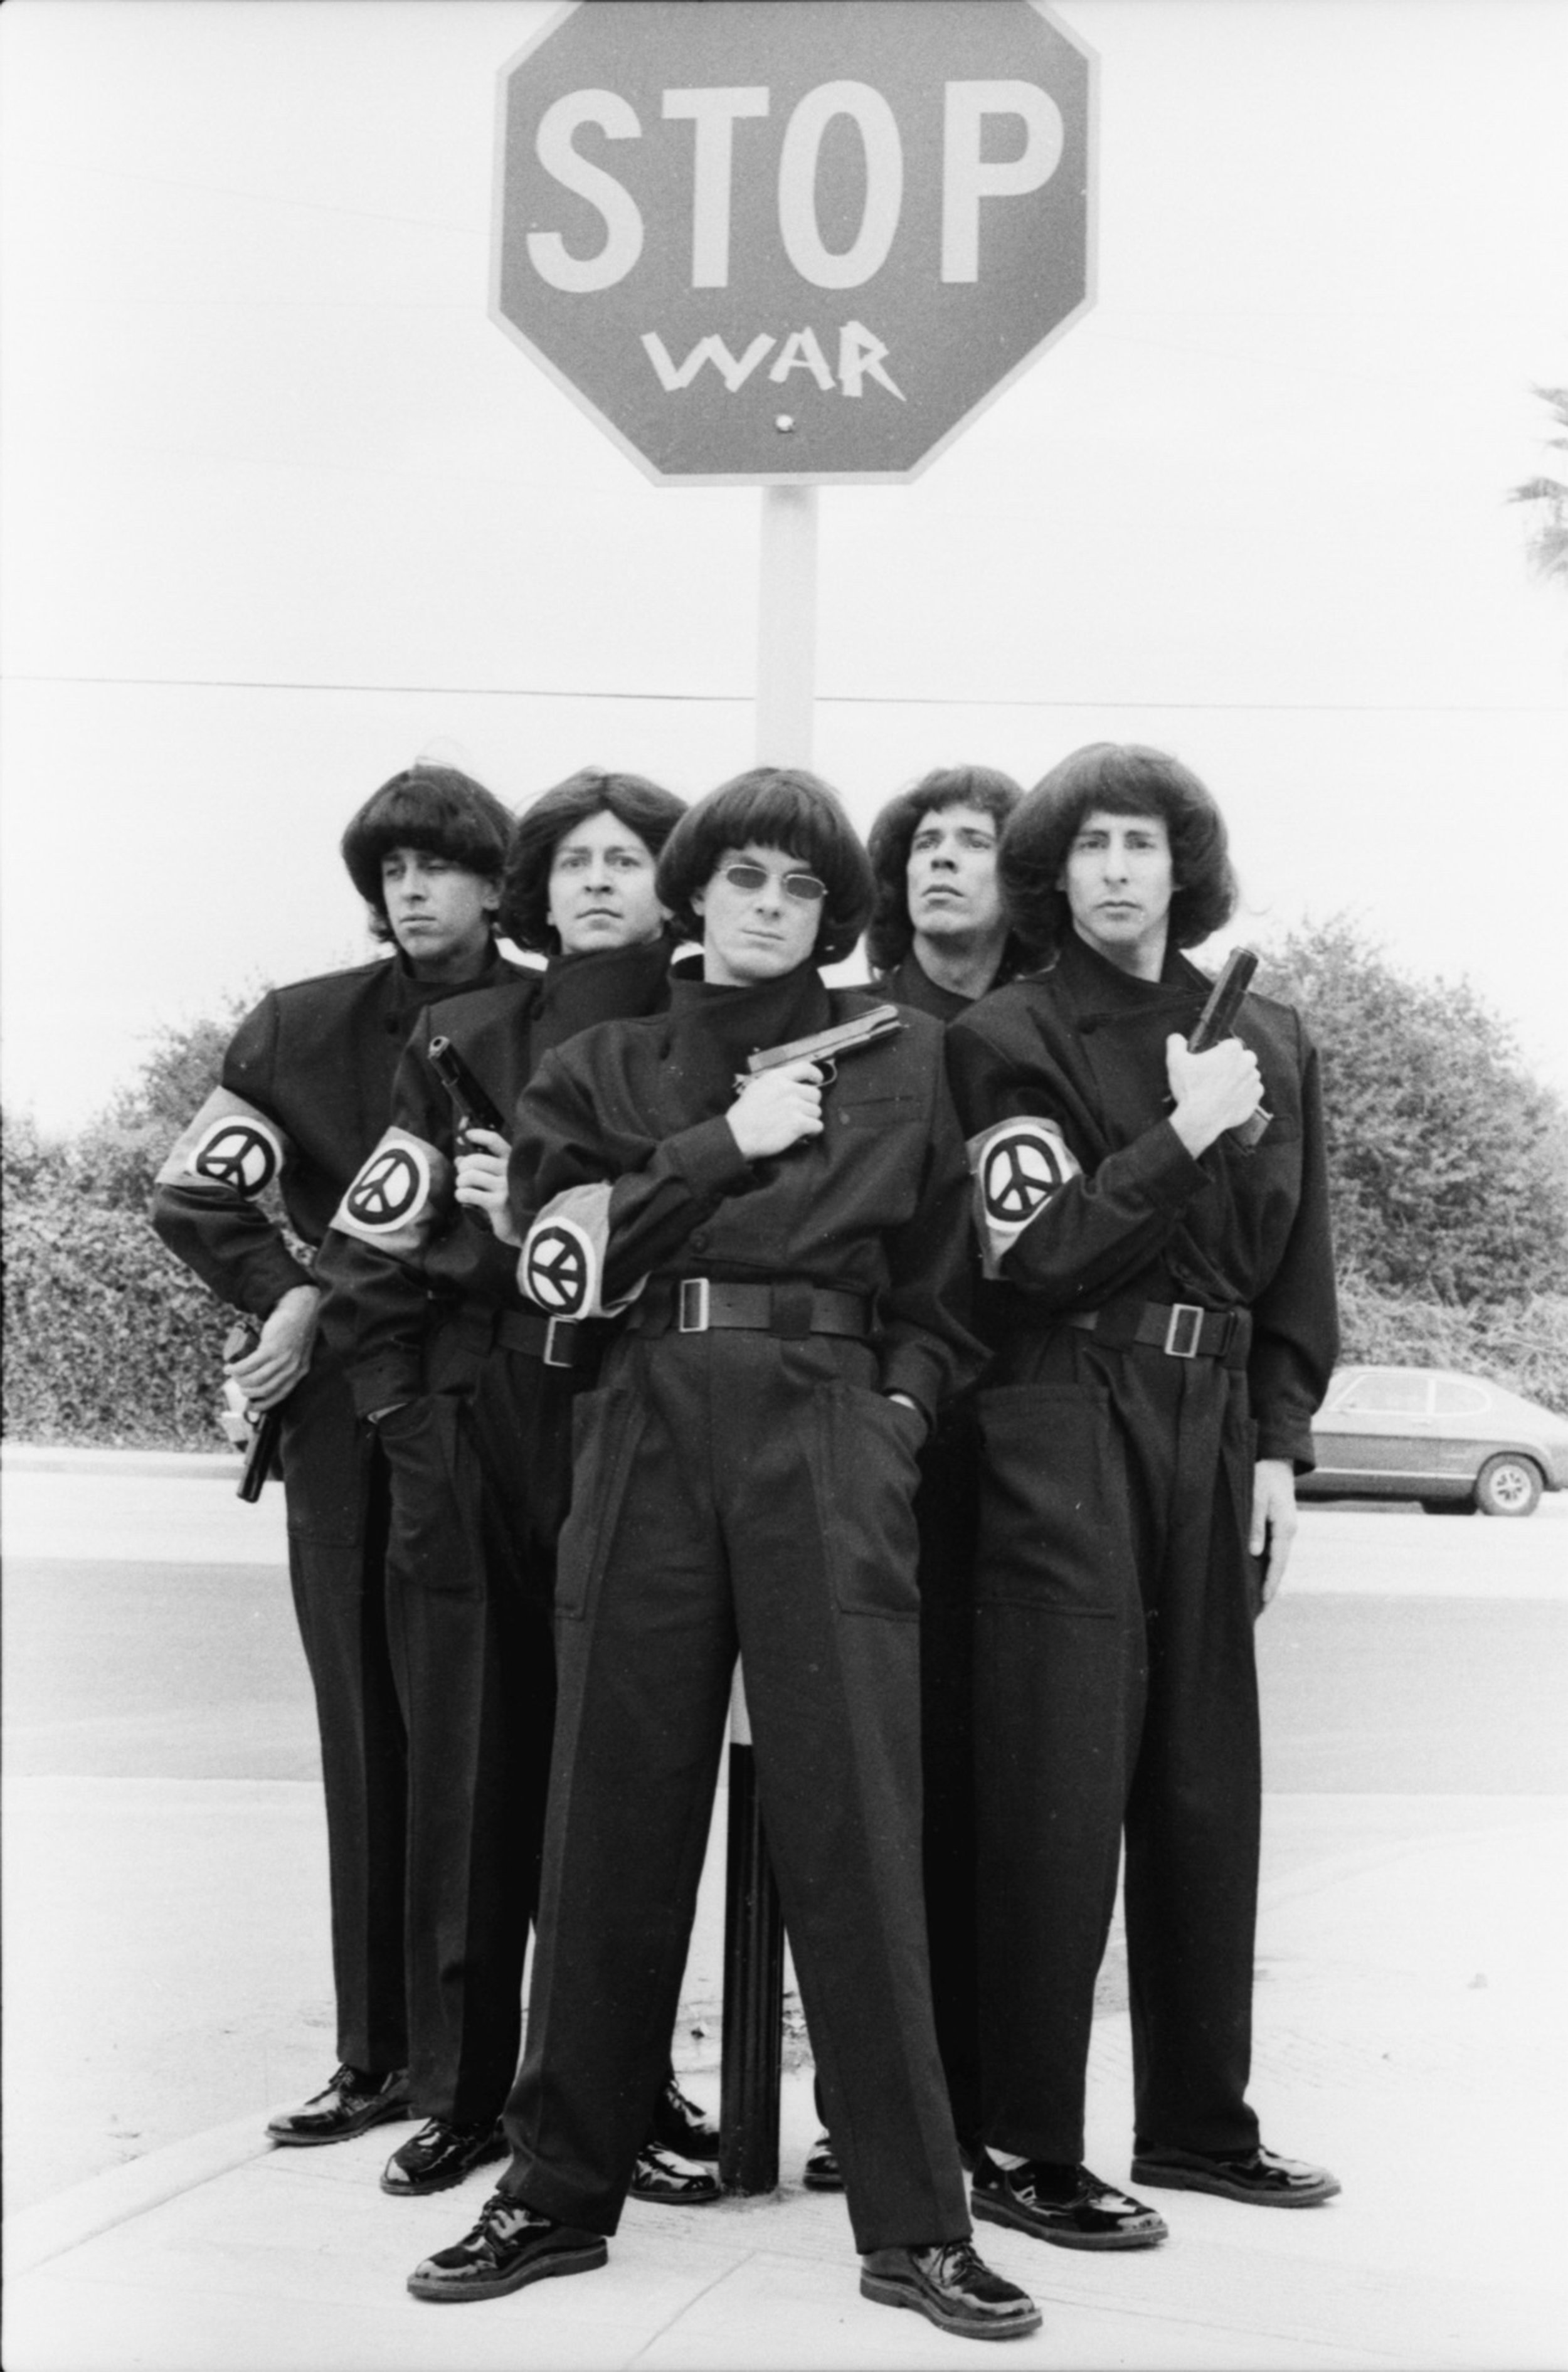 "Devo Stop War   ""While photographing DEVO on the street, they taped the word WAR below STOP, creating an iconic image."""